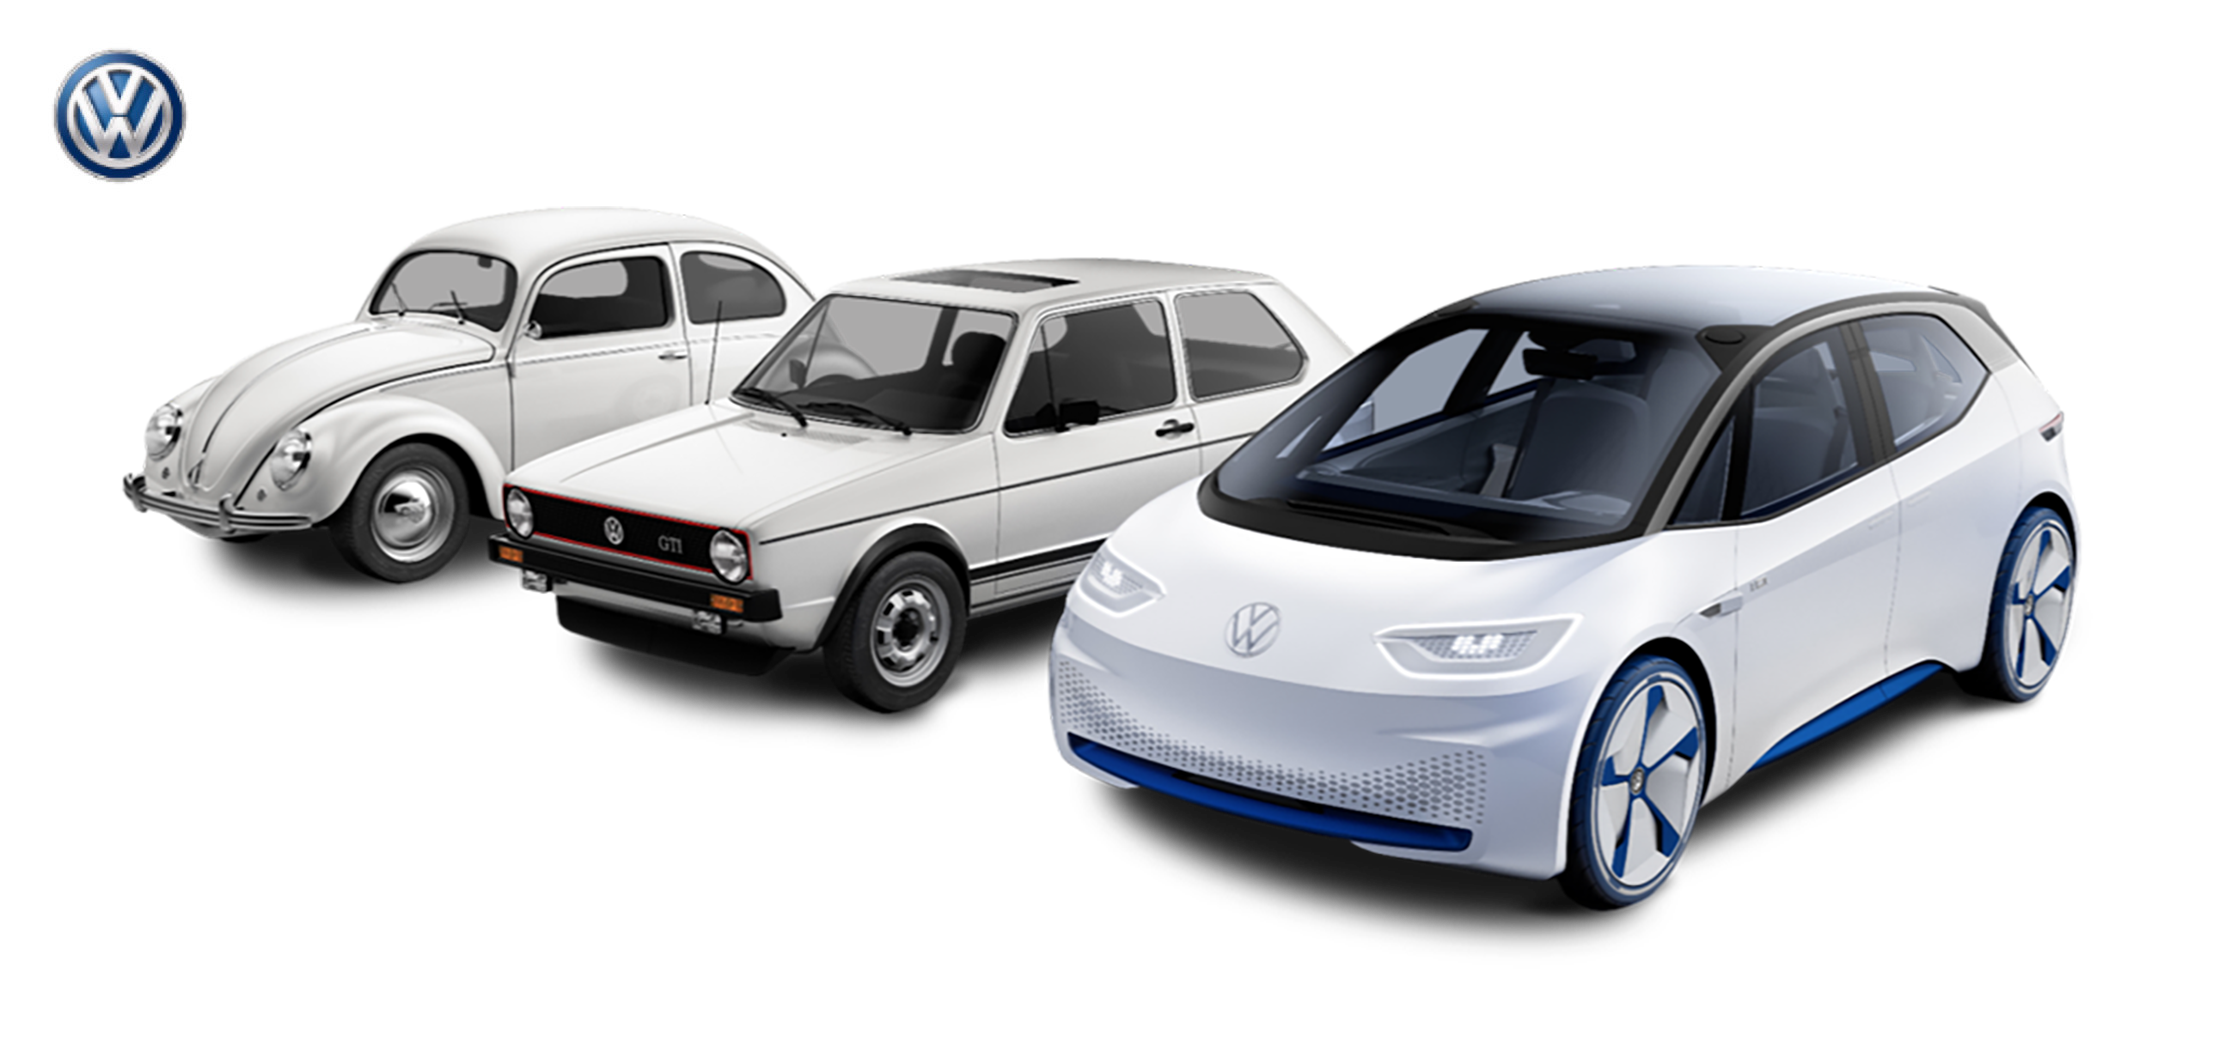 volkwagen-electric-car-golf